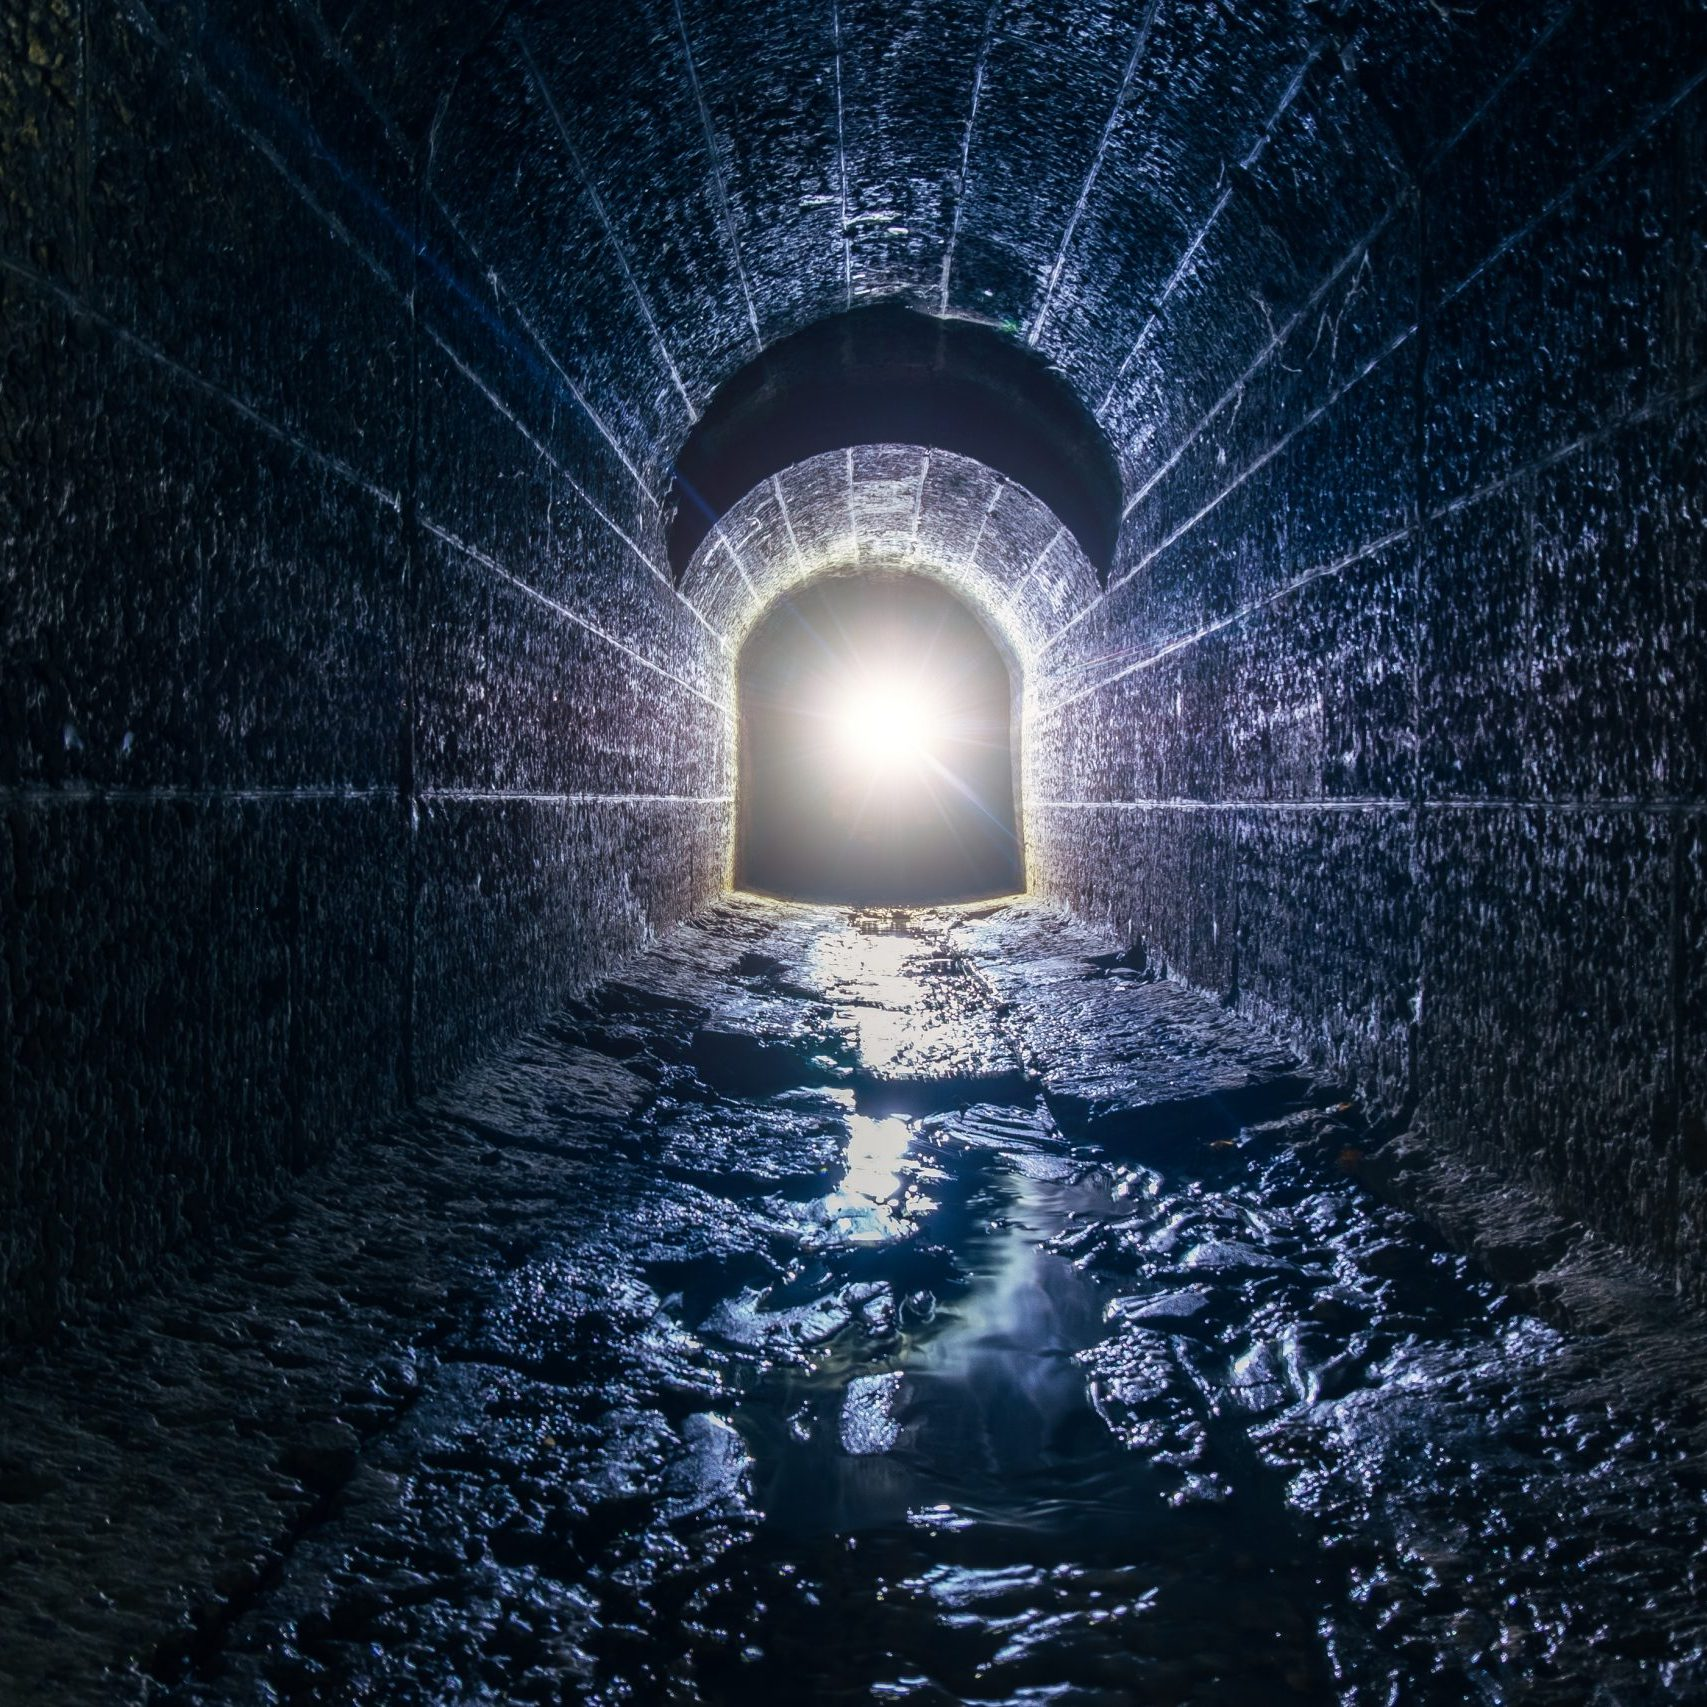 Dark,And,Creepy,Old,Historical,Vaulted,Flooded,Underground,Drainage,Tunnel